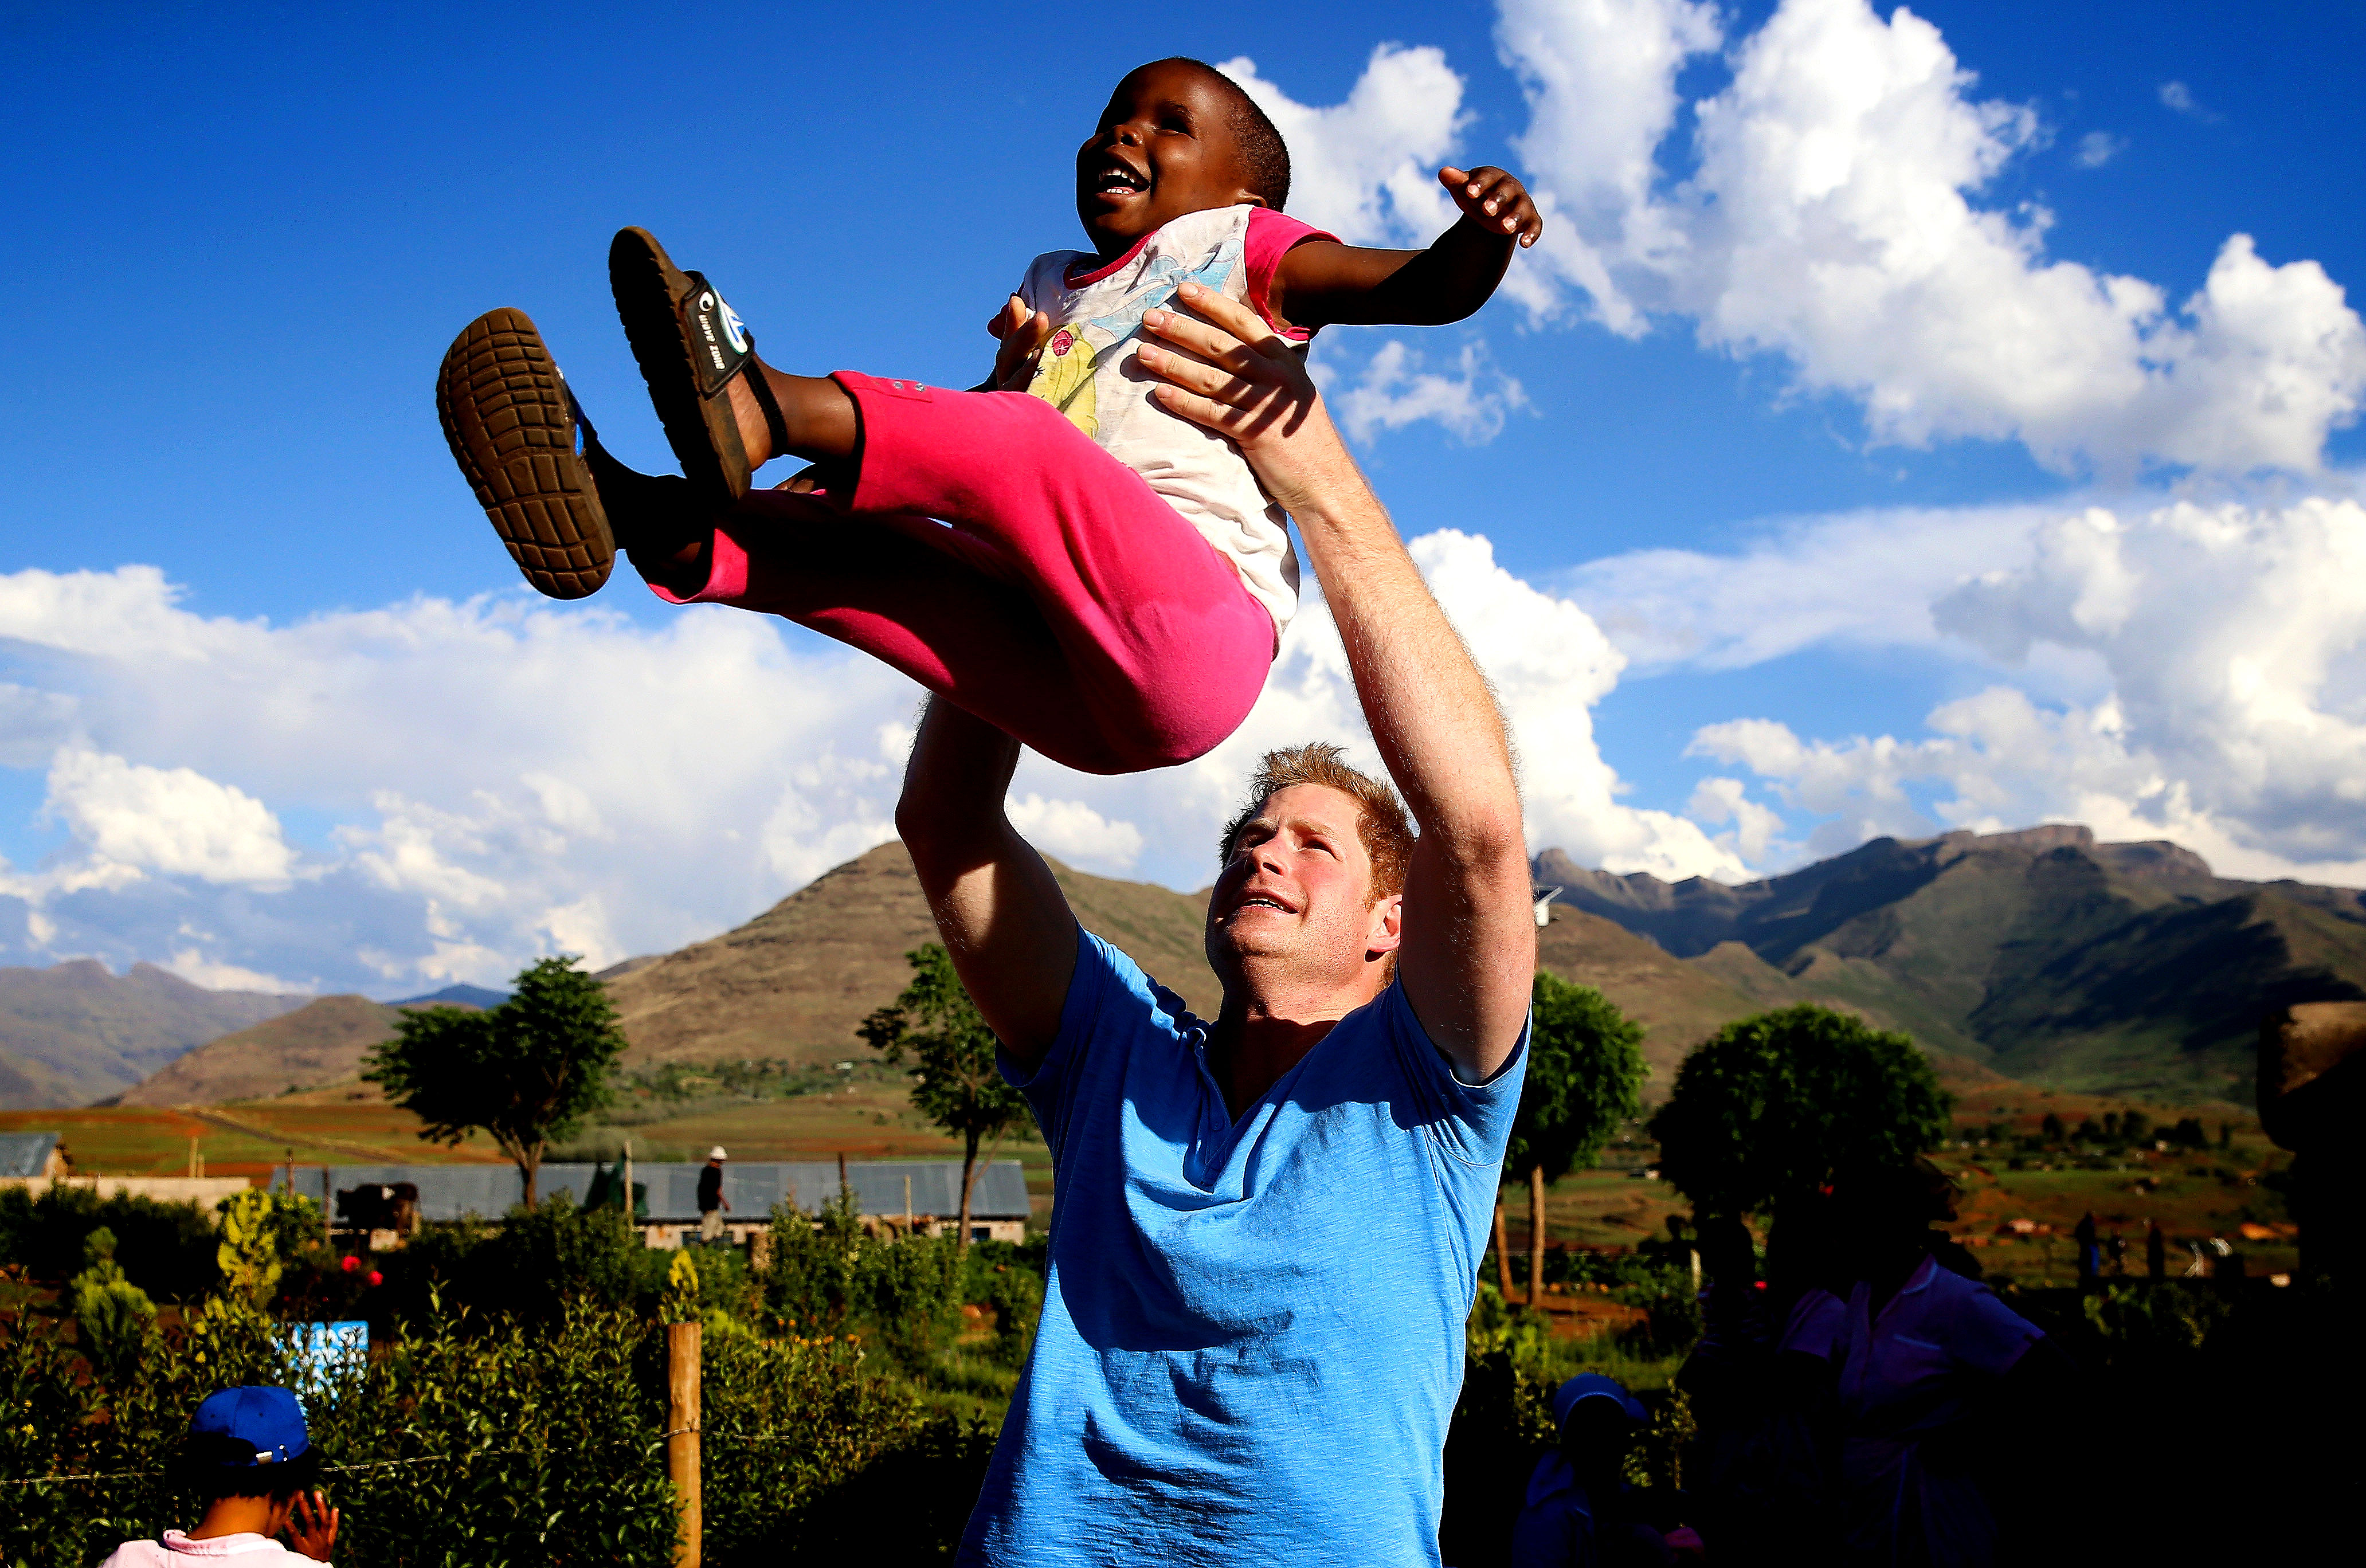 Prince Harry - In connection with his charity Sentebale — which supports Lesotho orphans and vulnerable children, many of whom are affected by the HIV/AIDS epidemic — Prince Harry played with a blind girl during a visit to Phelisanong Children's Home in December 2014.